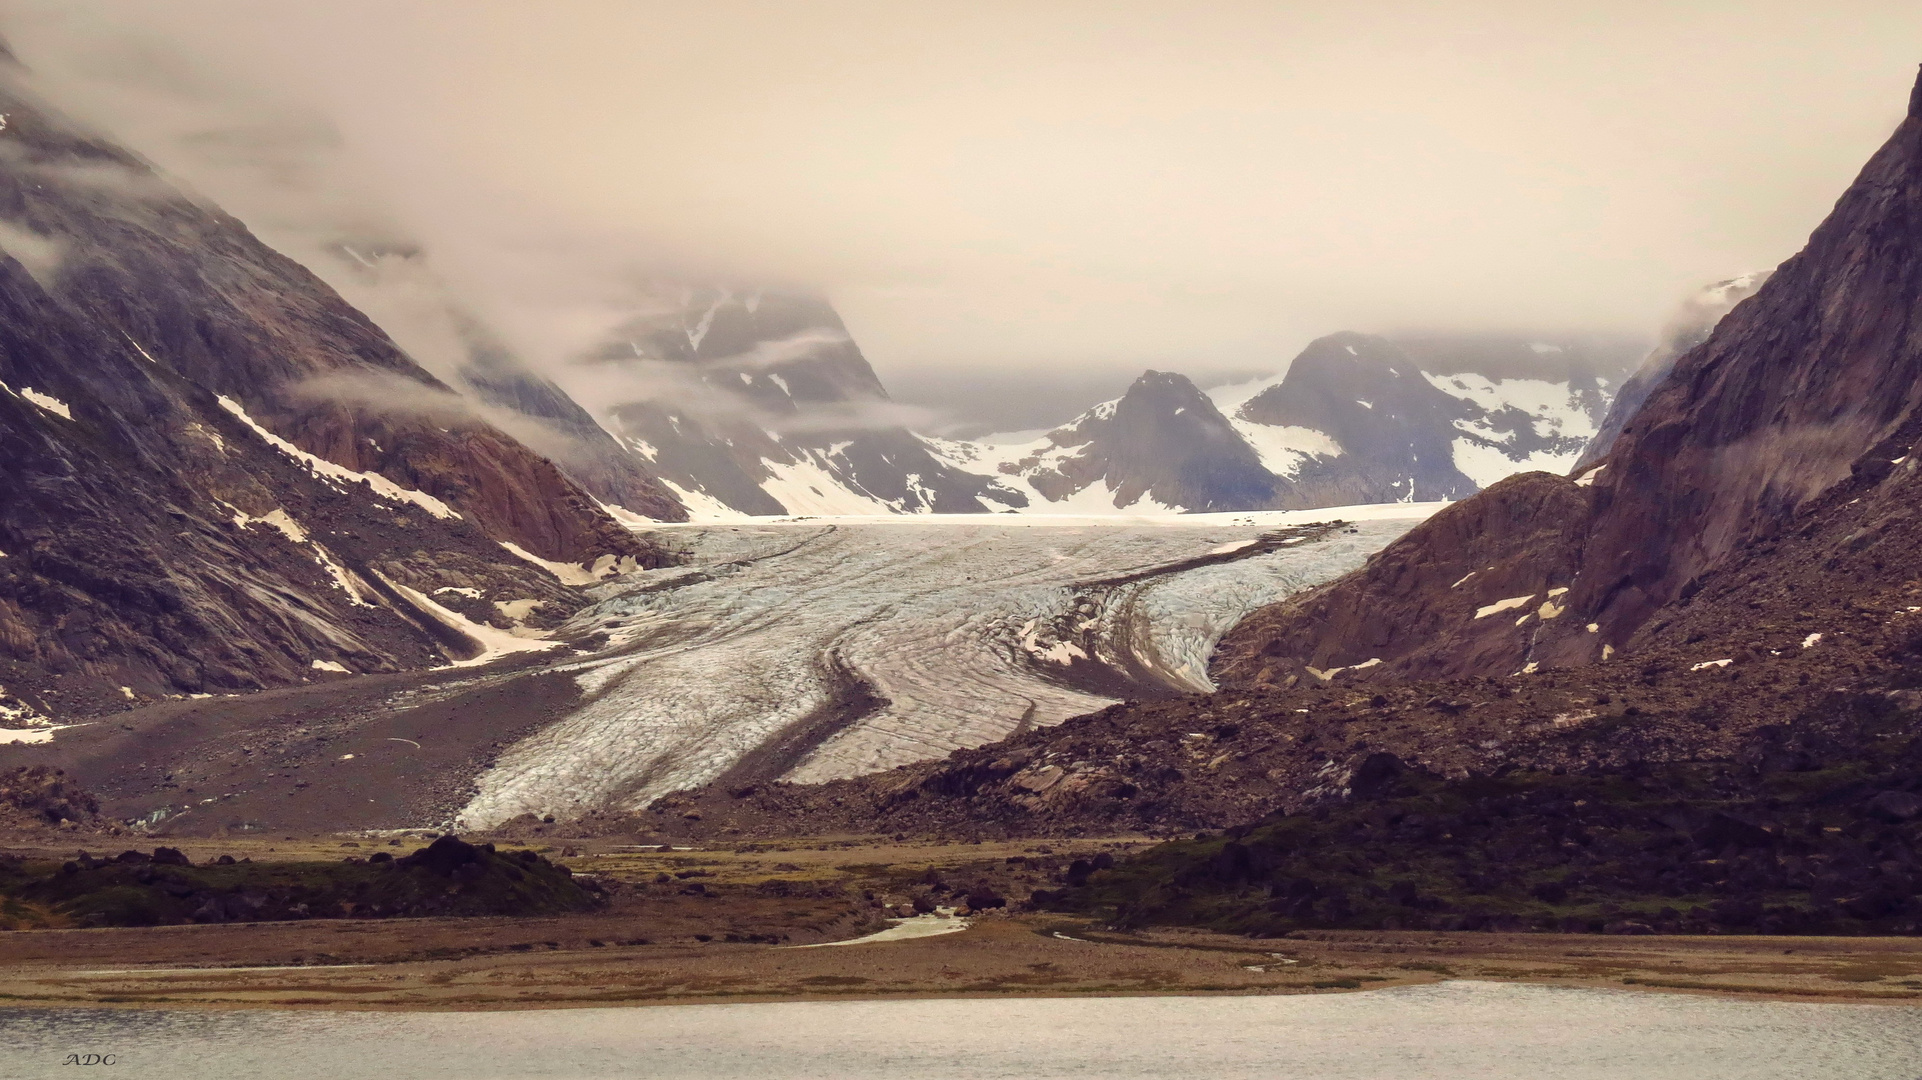 Once this Glacier reached the Water